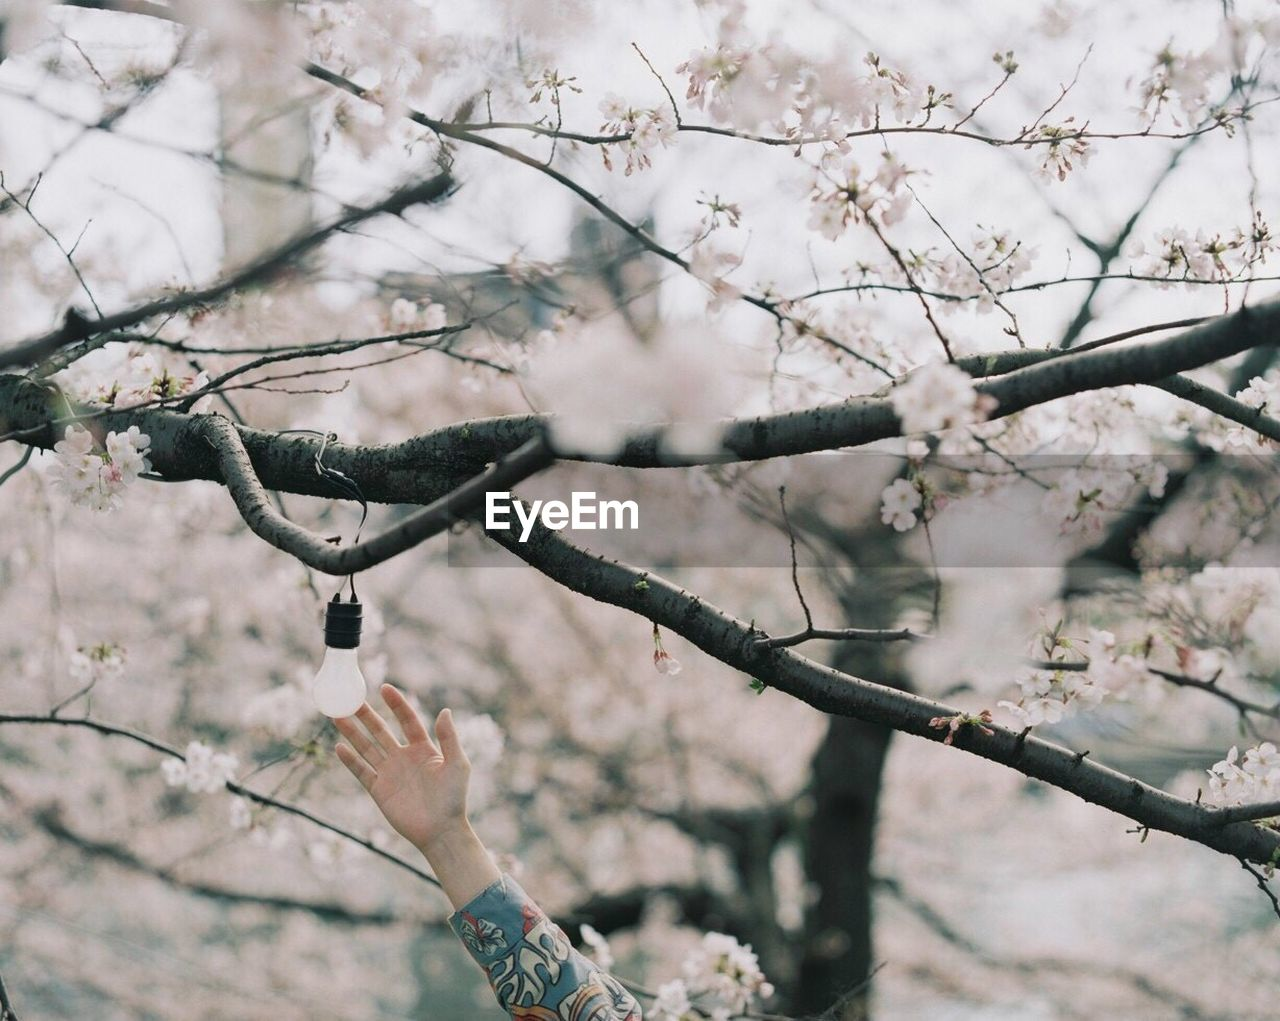 Cropped Image Of Woman Touching Light Bulb Hanging From Flowering Tree